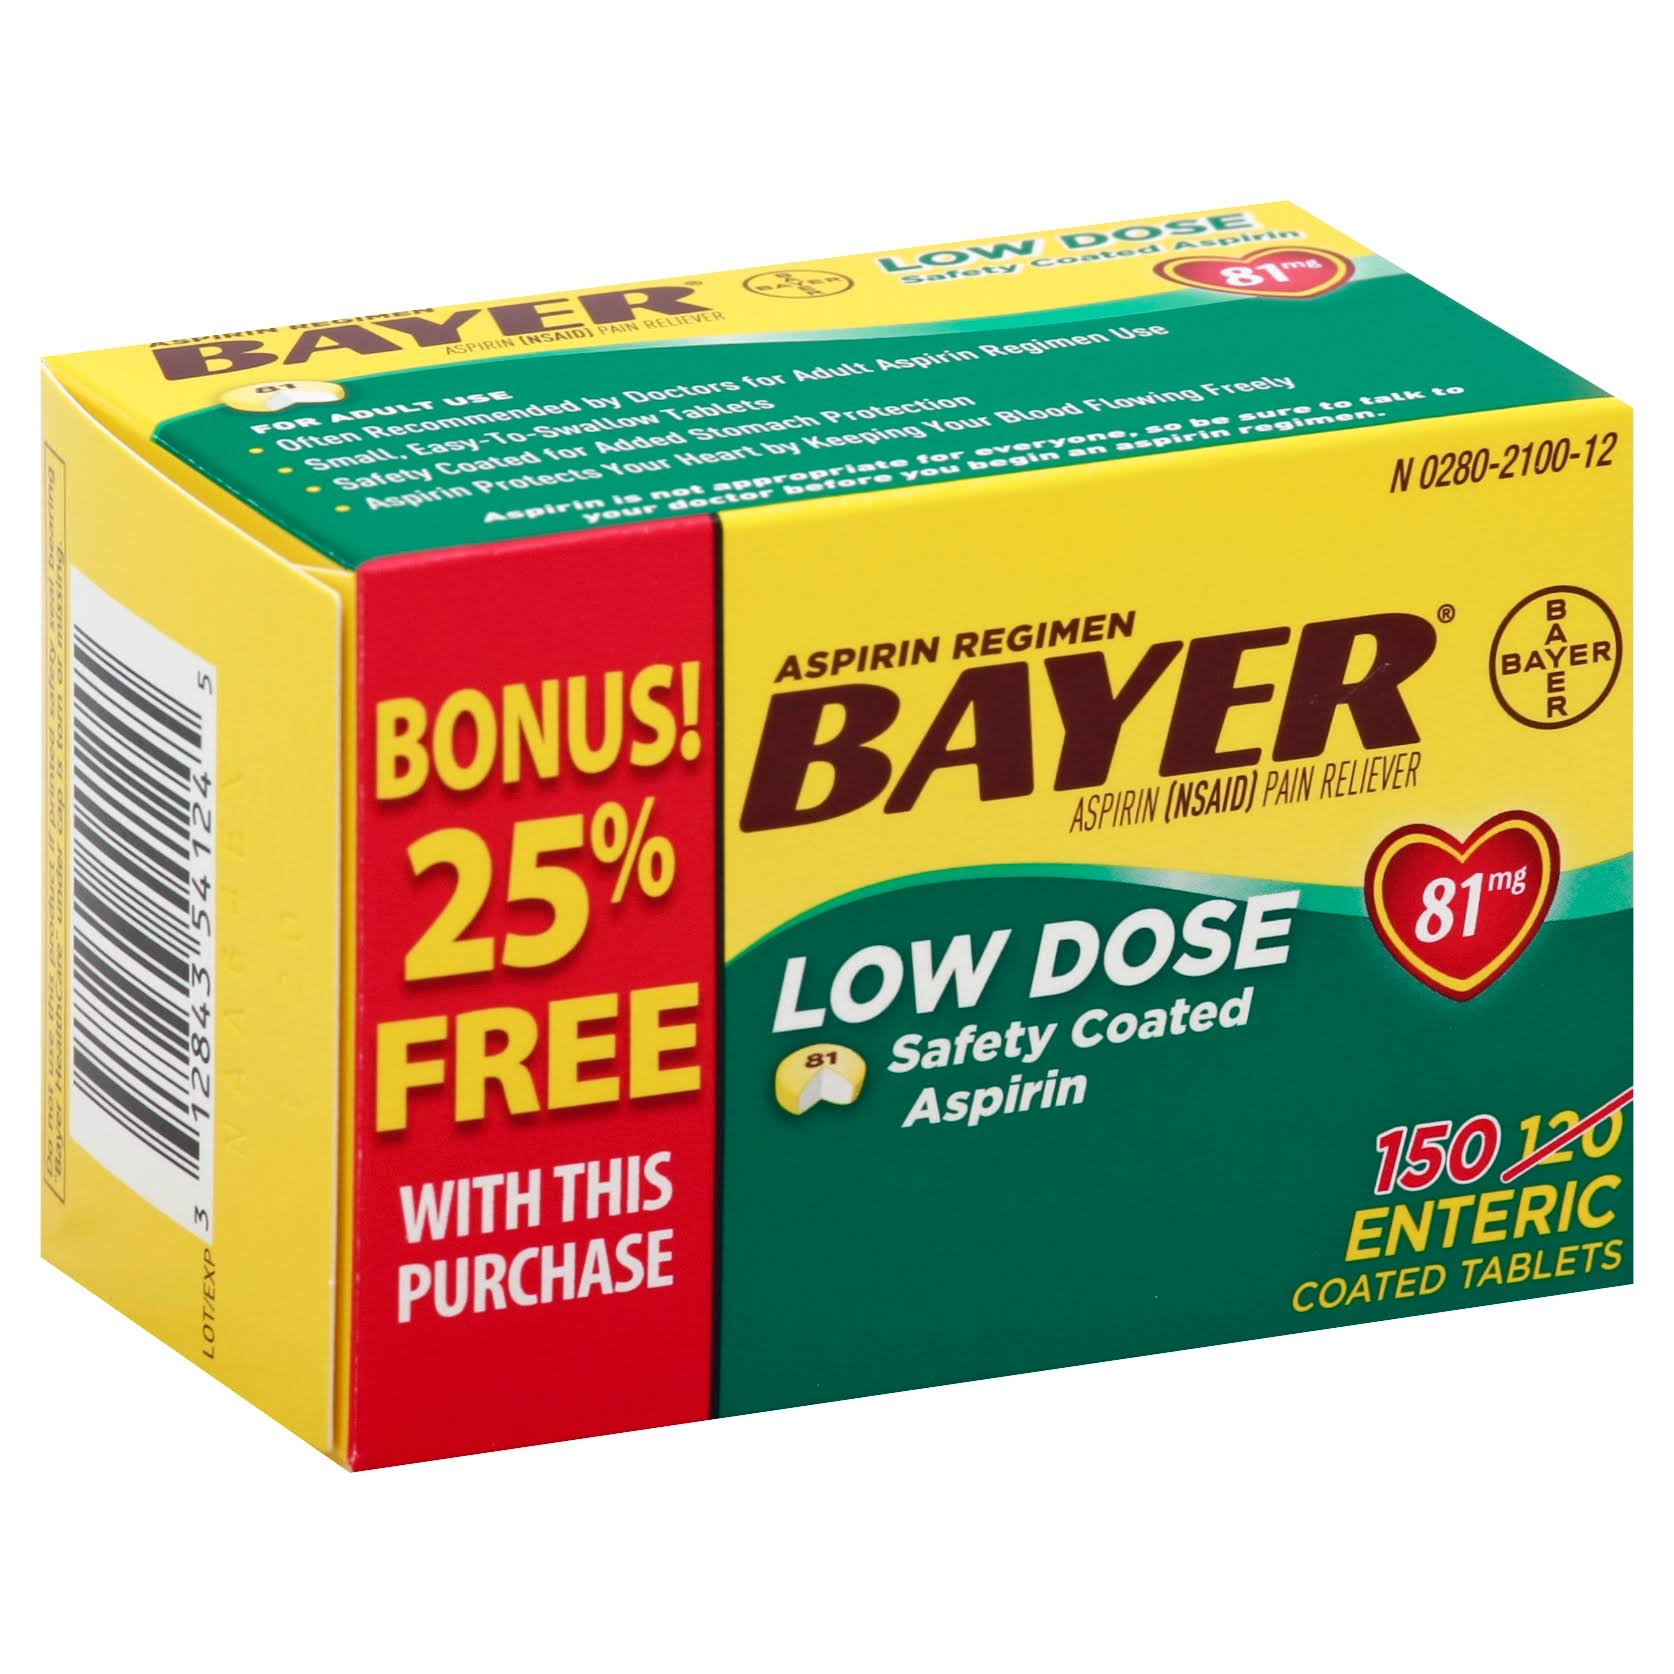 Bayer Low Dose Baby Aspirin Pain Reliever - 81mg, 150ct